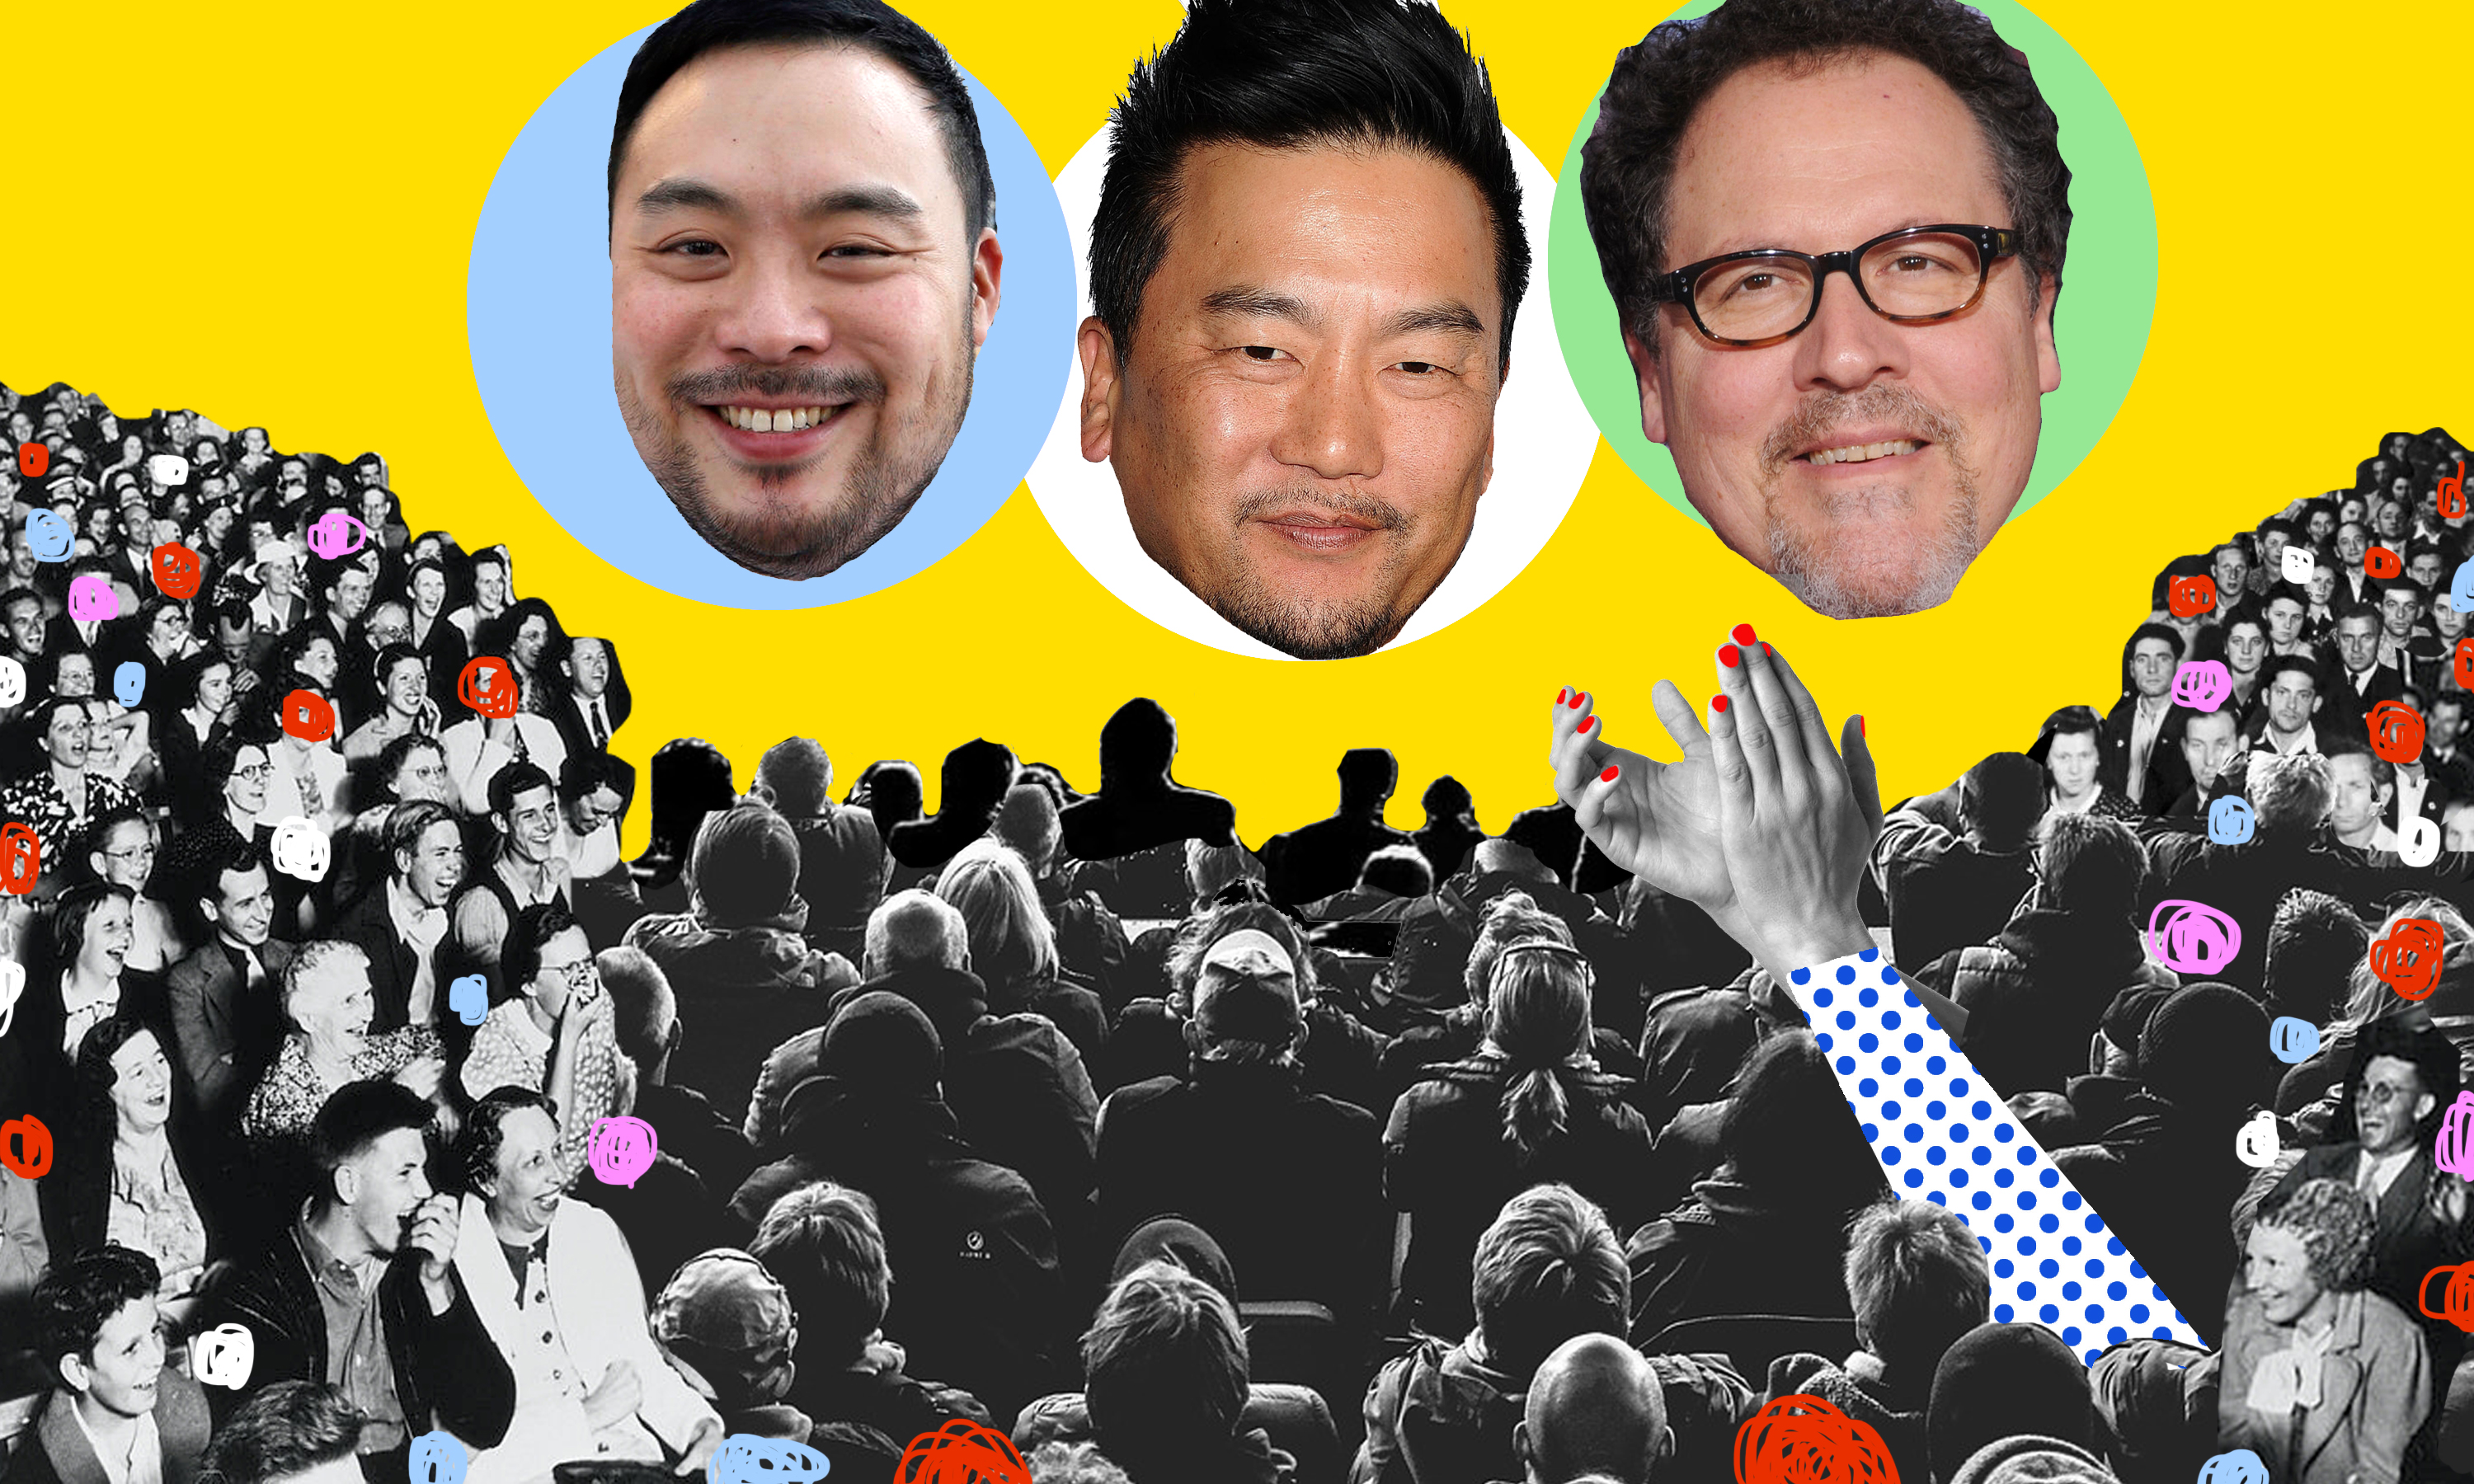 The heads of David Chang, Roy Choi, and Jon Favreau float over a theater crowd in black and white.